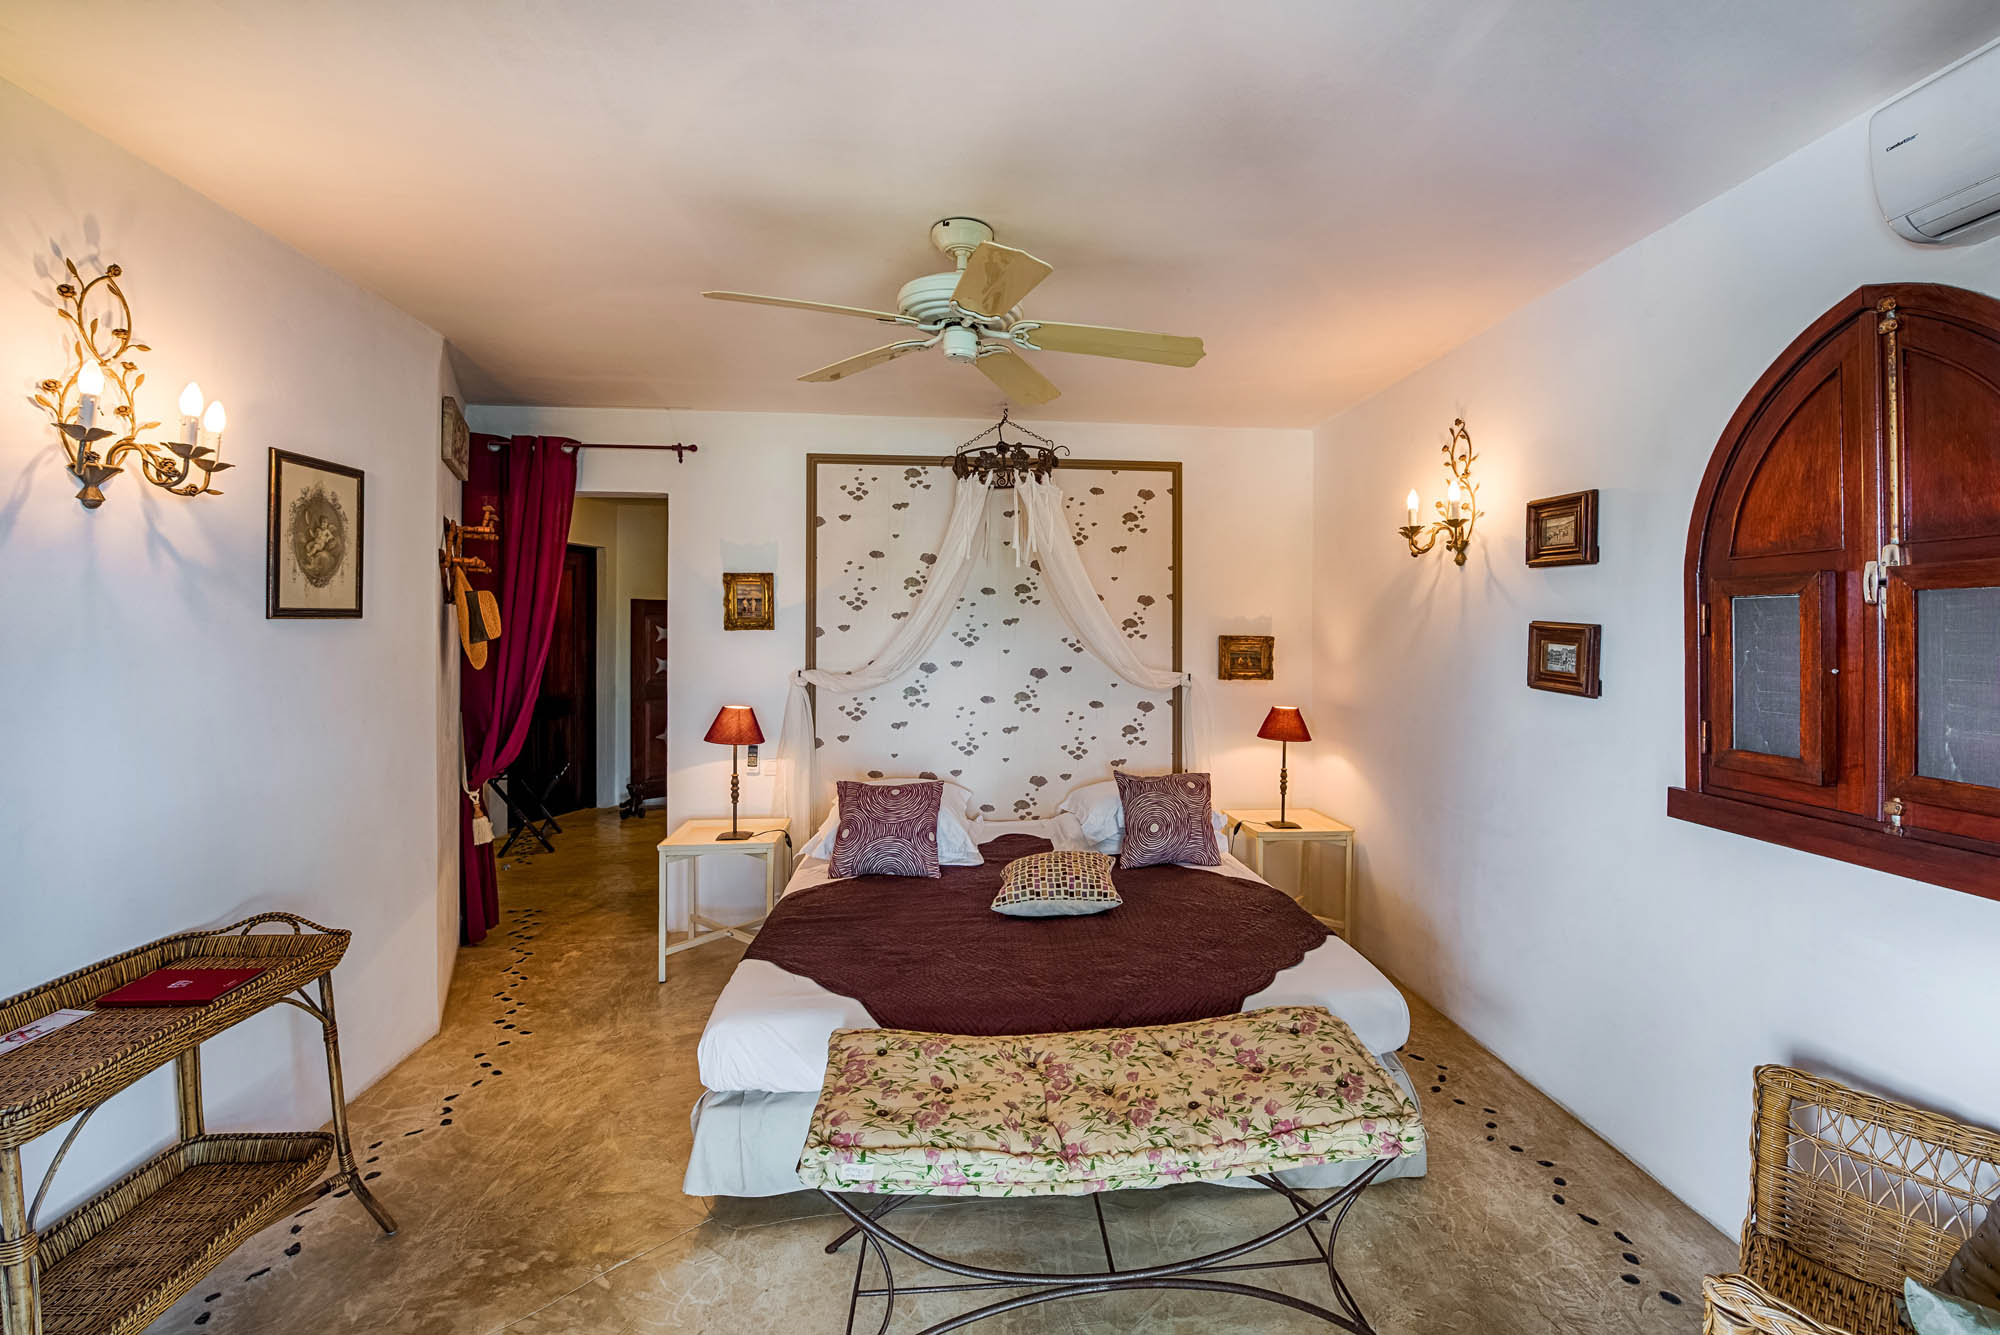 One of the spacious bedrooms at Le Mas des Sables, Baie aux Cayes, Terres-Basses, St. Martin villa rental, French West Indies.